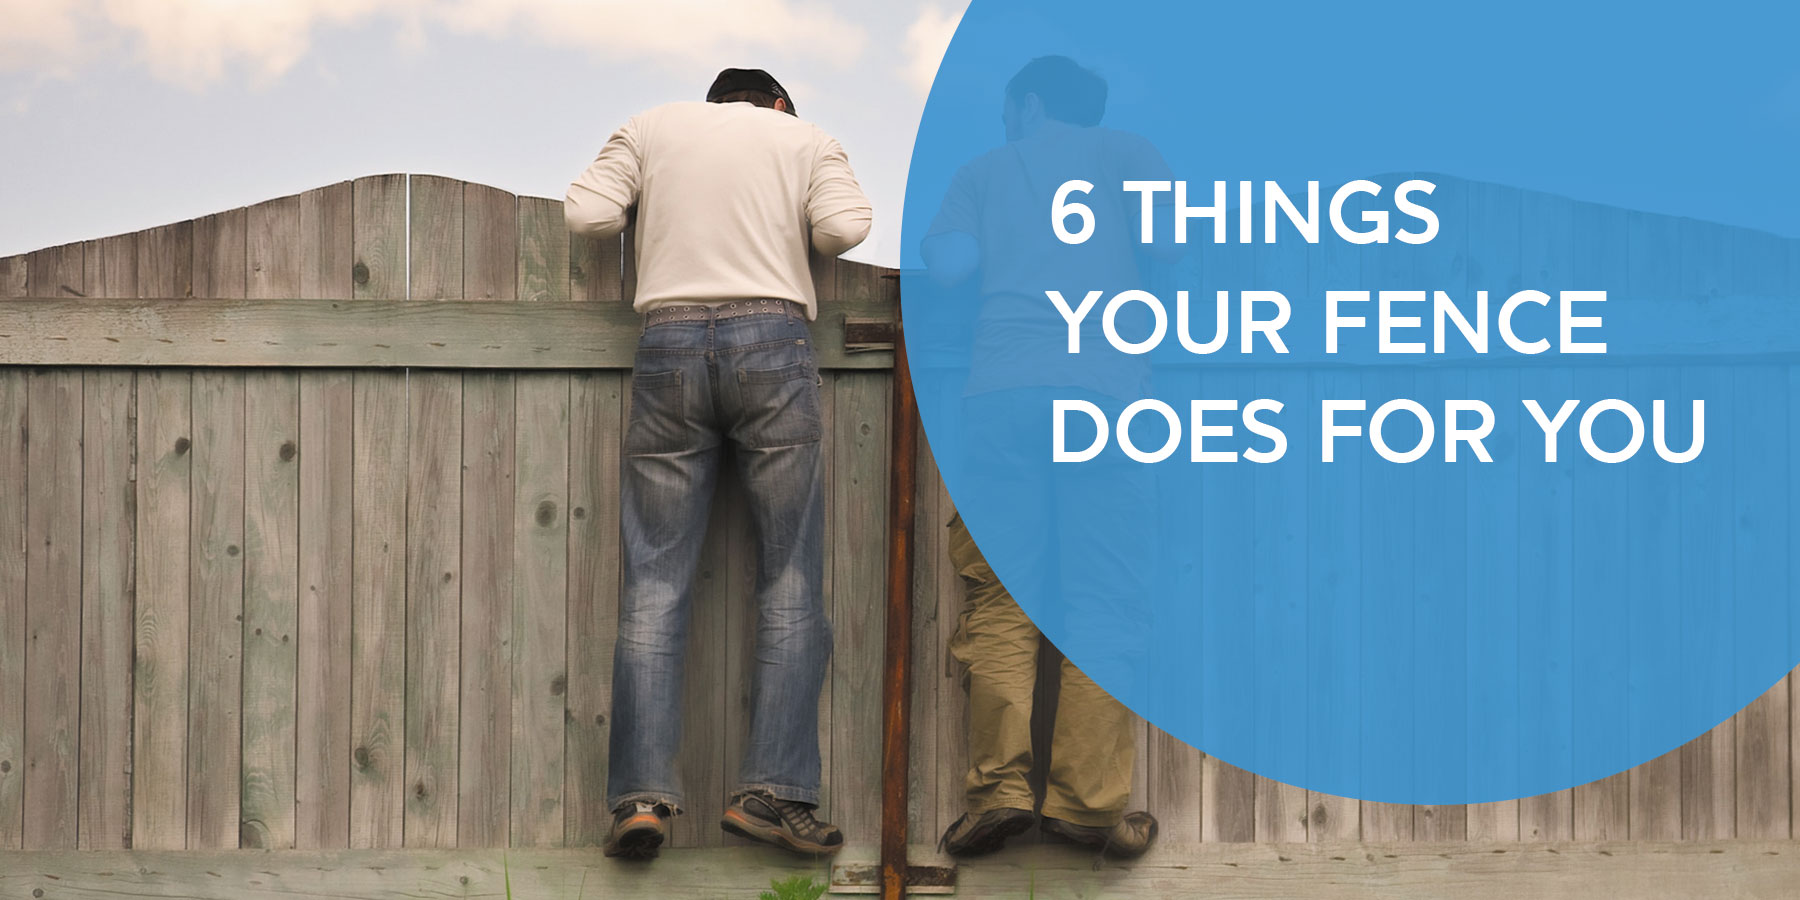 6 THINGS YOUR FENCE DOES FOR YOU